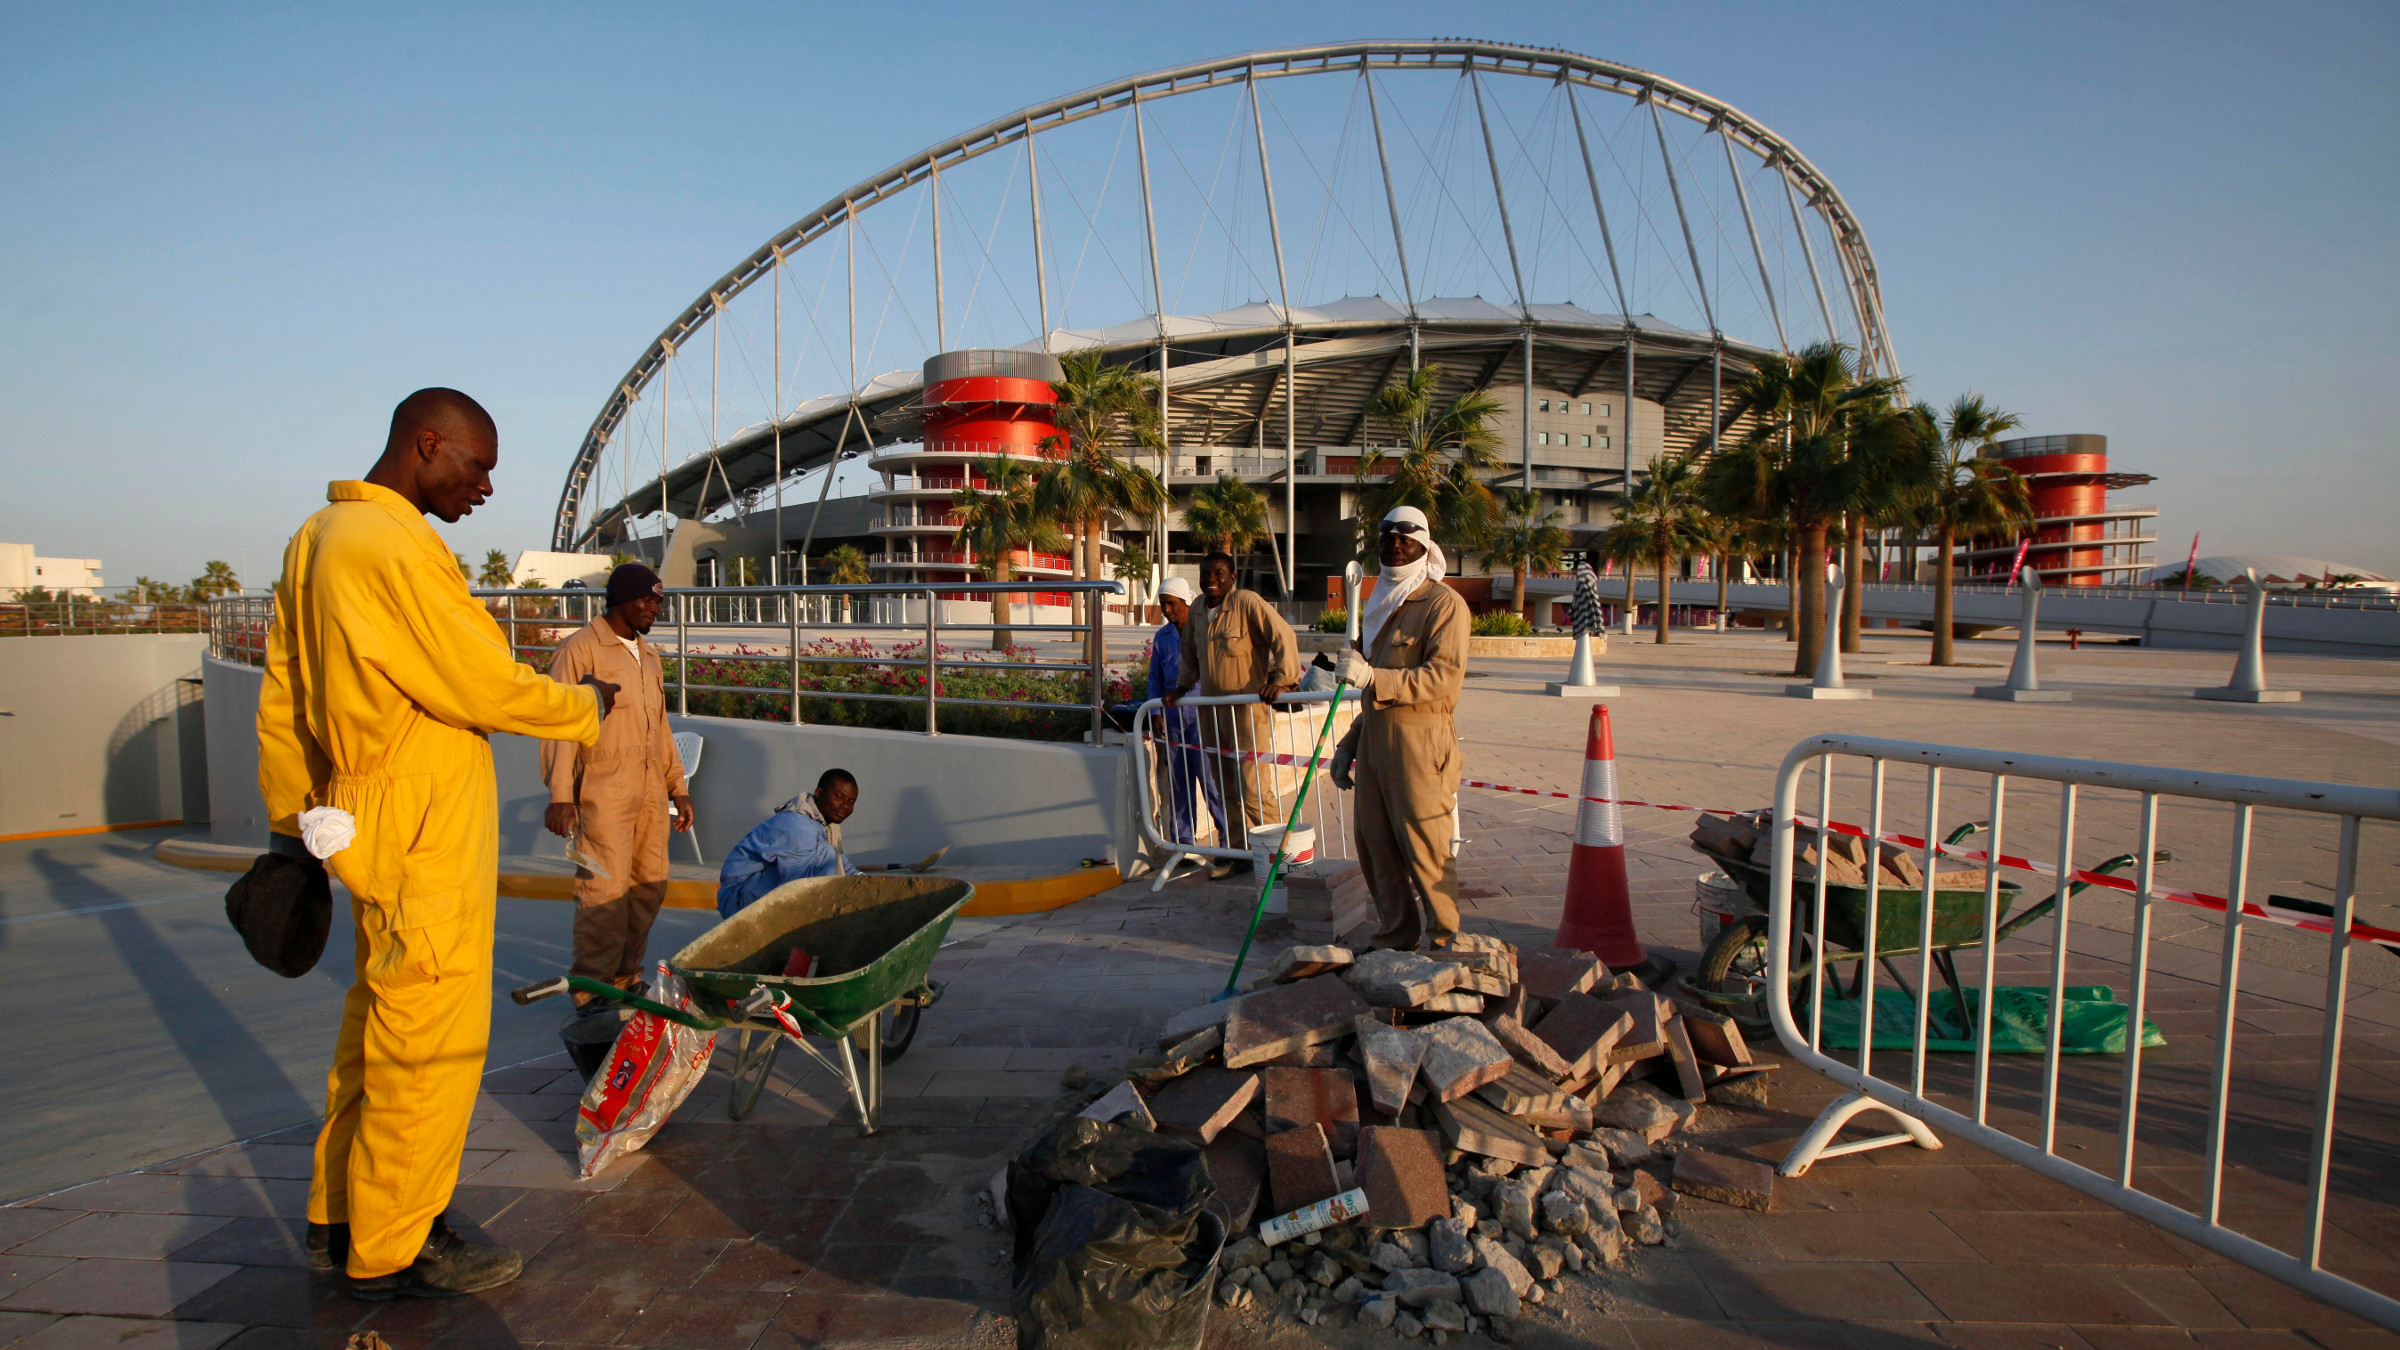 Workers clean up the road outside the Khalifa stadium where the first match of the AFC Asian Cup will take place, in Doha, Qatar, Monday, Jan. 3, 2011.